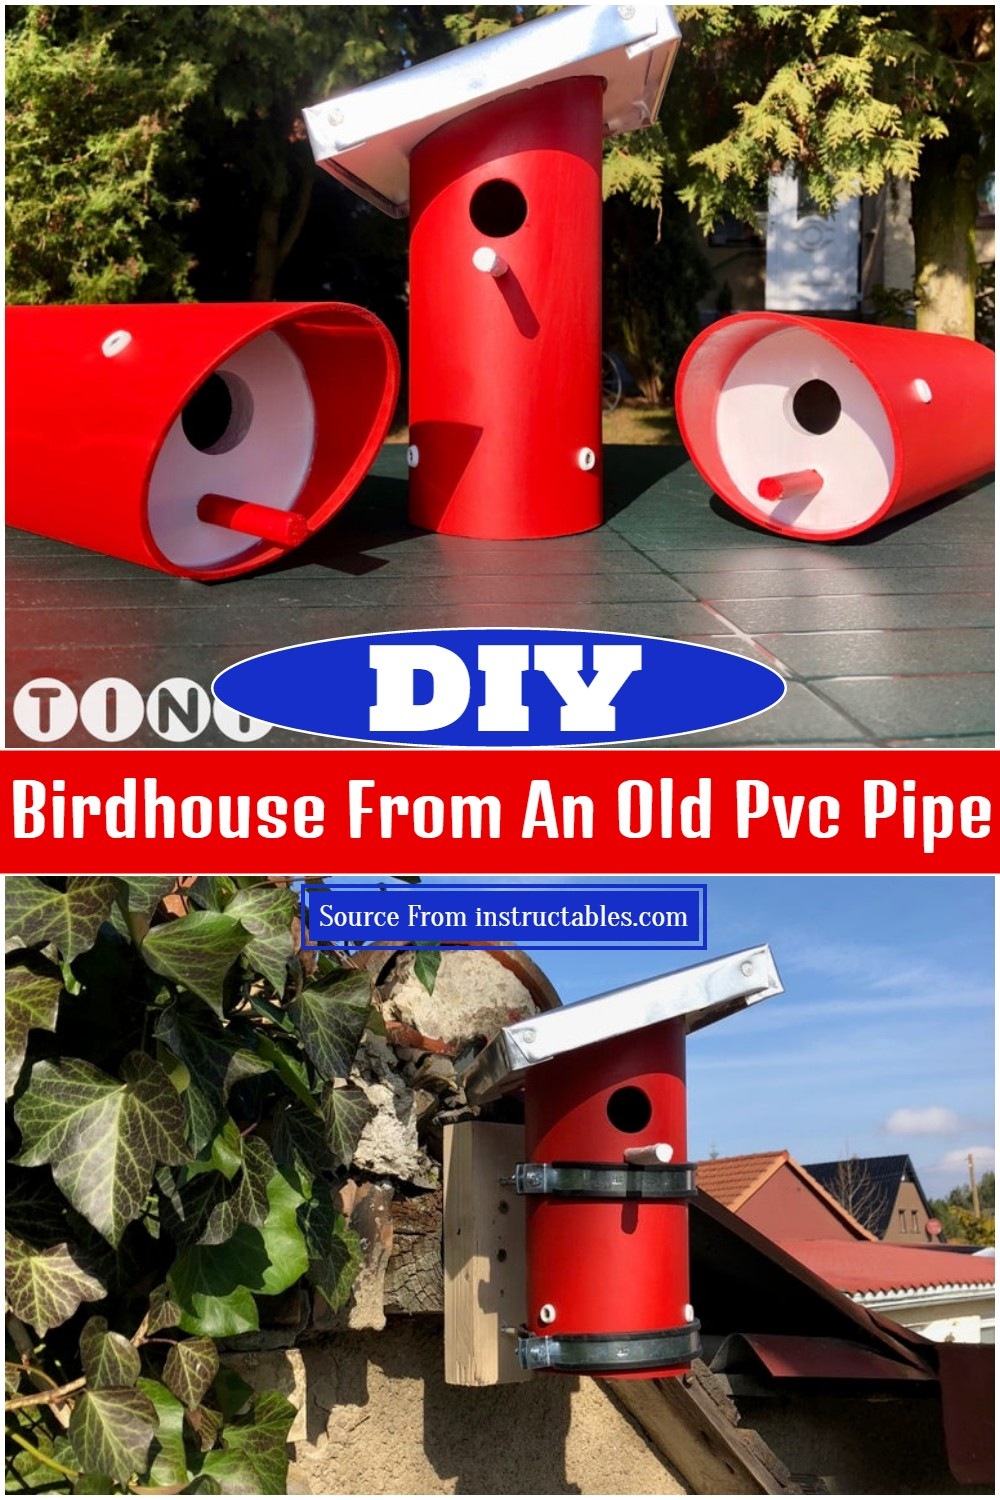 DIY Birdhouse From An Old Pvc Pipe